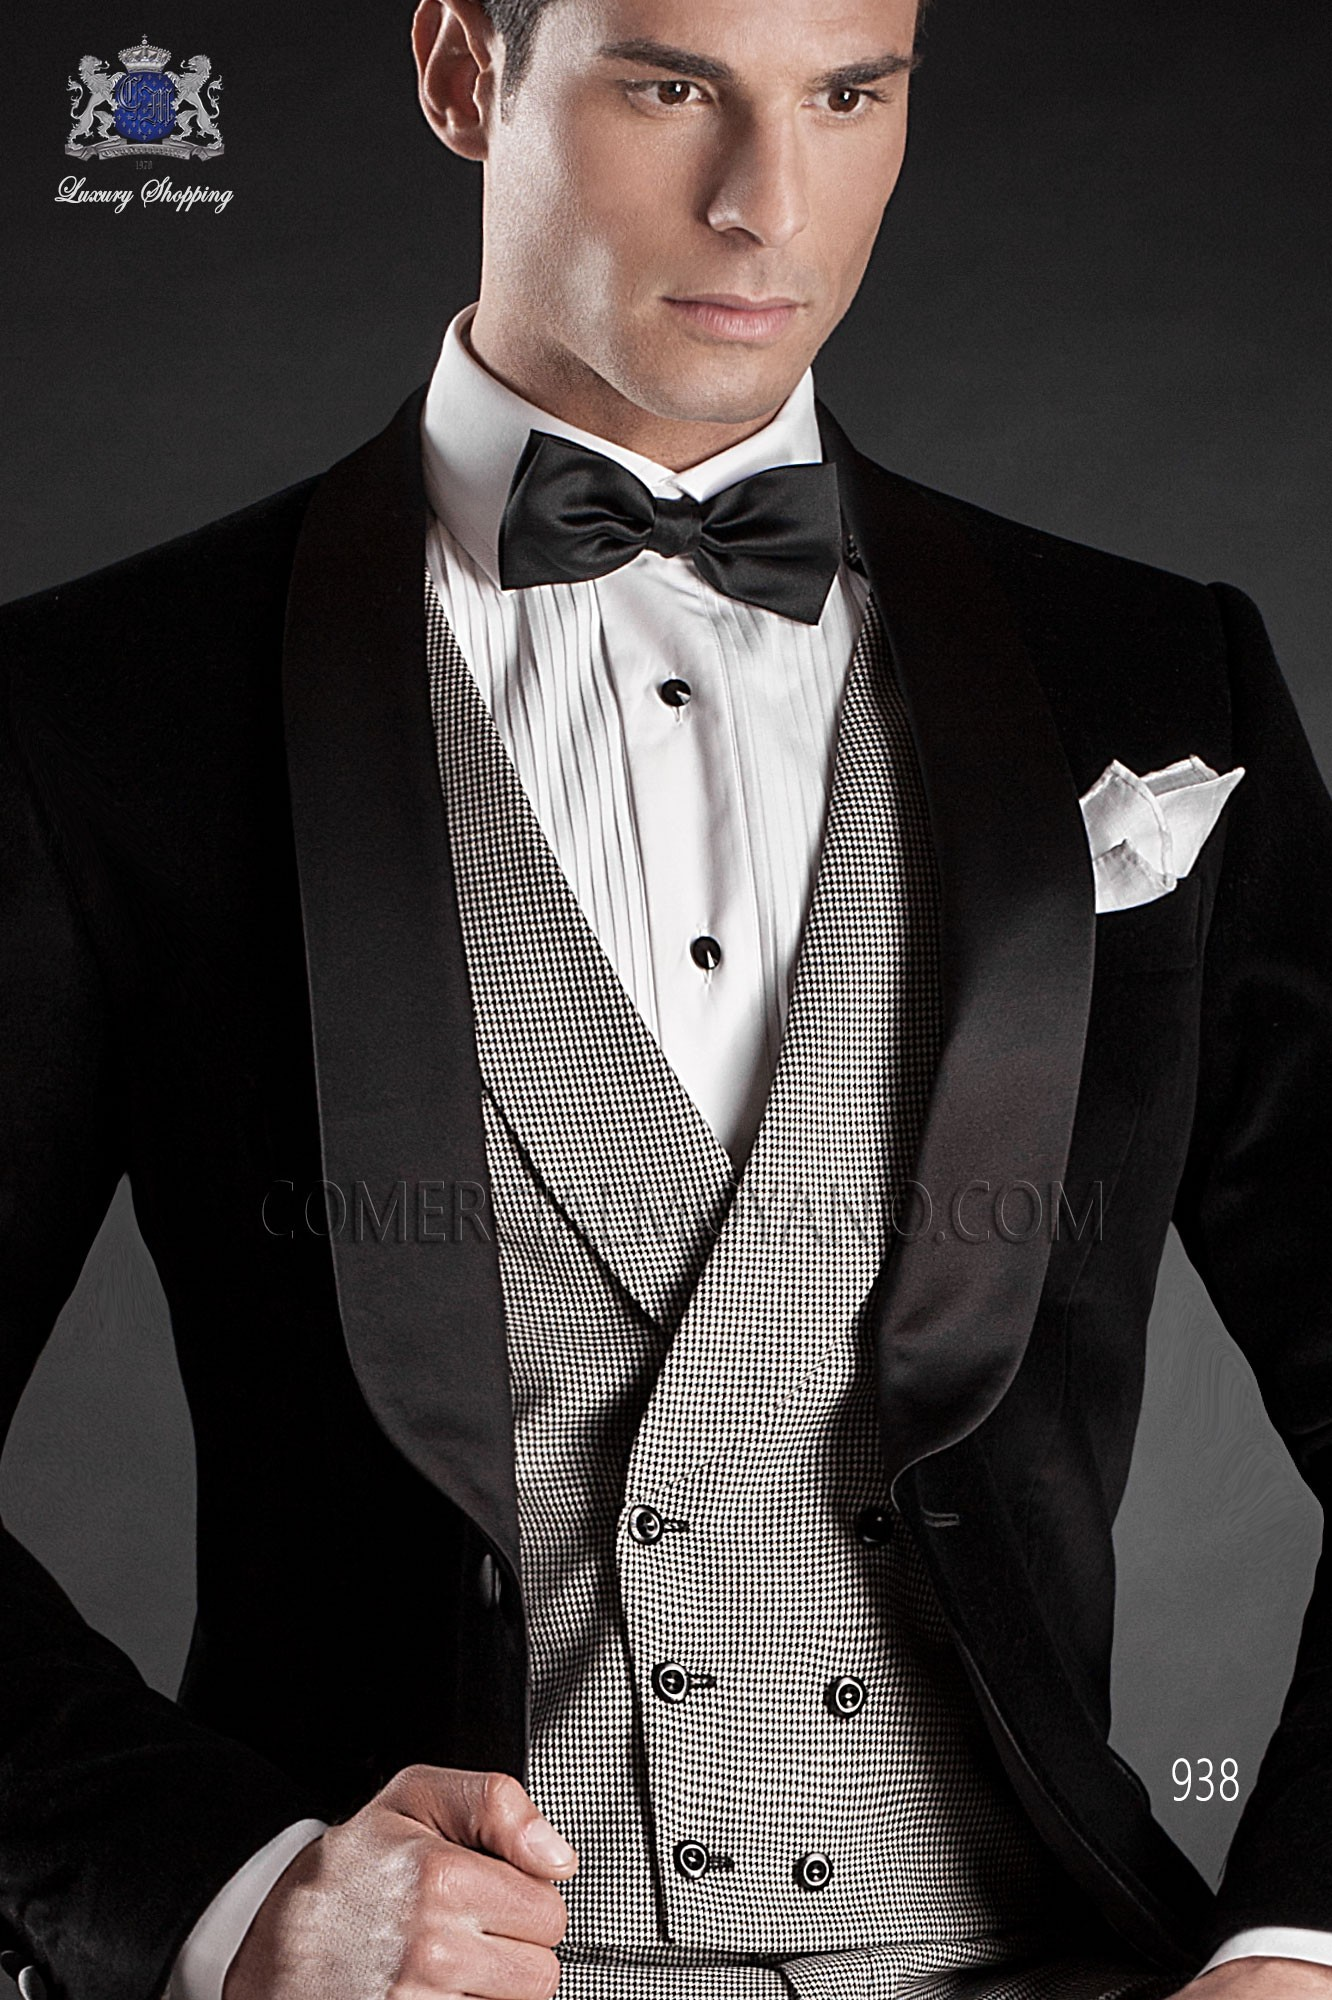 Italian blacktie black men wedding suit, model: 938 Ottavio Nuccio Gala Black Tie Collection